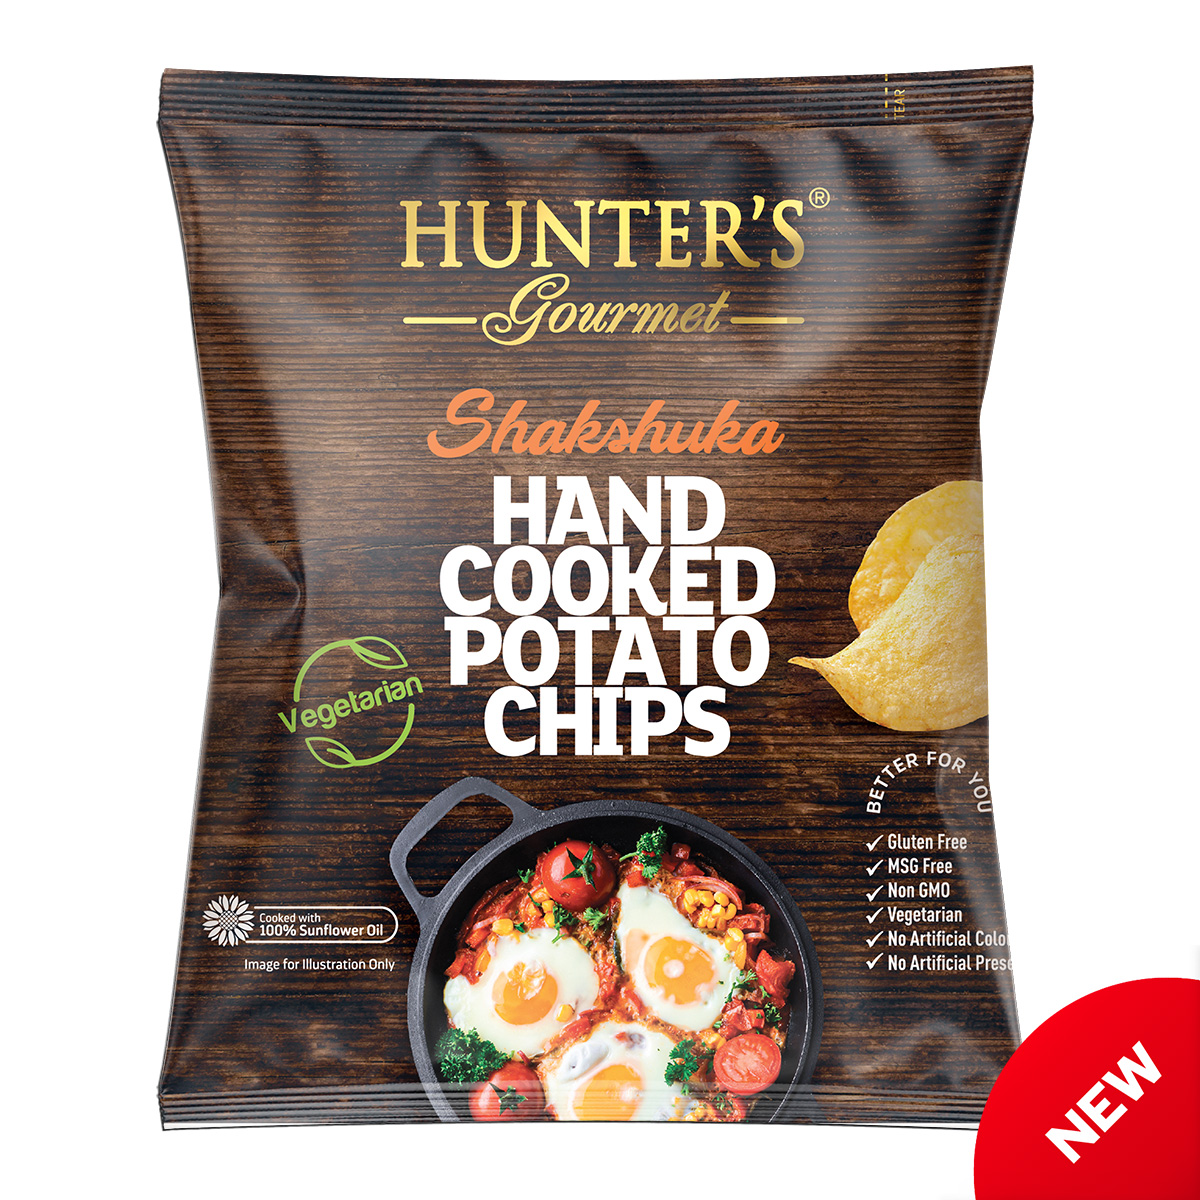 Hunter's Gourmet Hand Cooked Potato Chips – Shawarma – Middle Eastern Flavours (25gm)